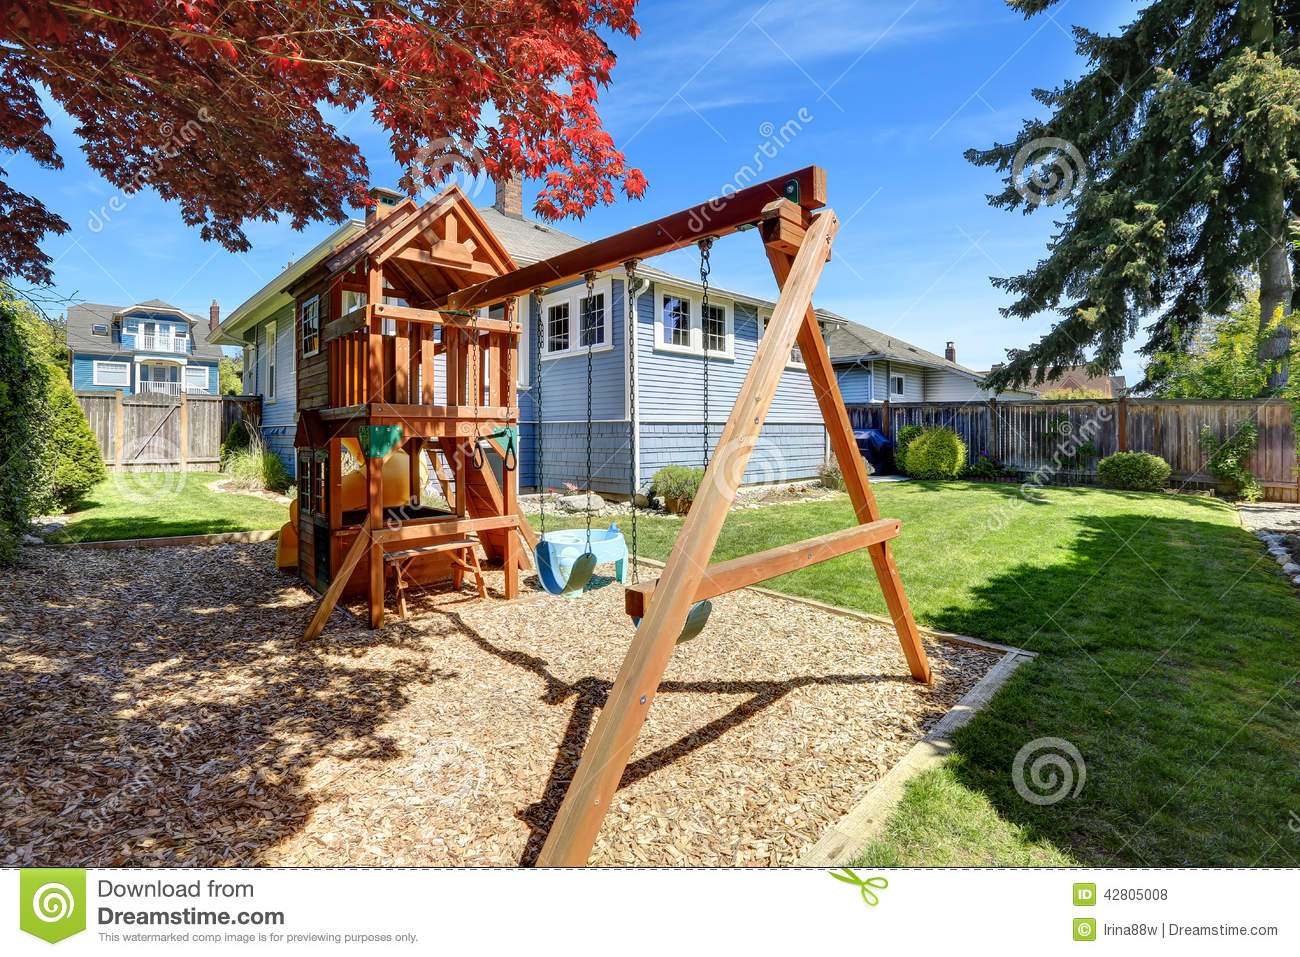 House Backyard With Playground For Kids Stock Photo